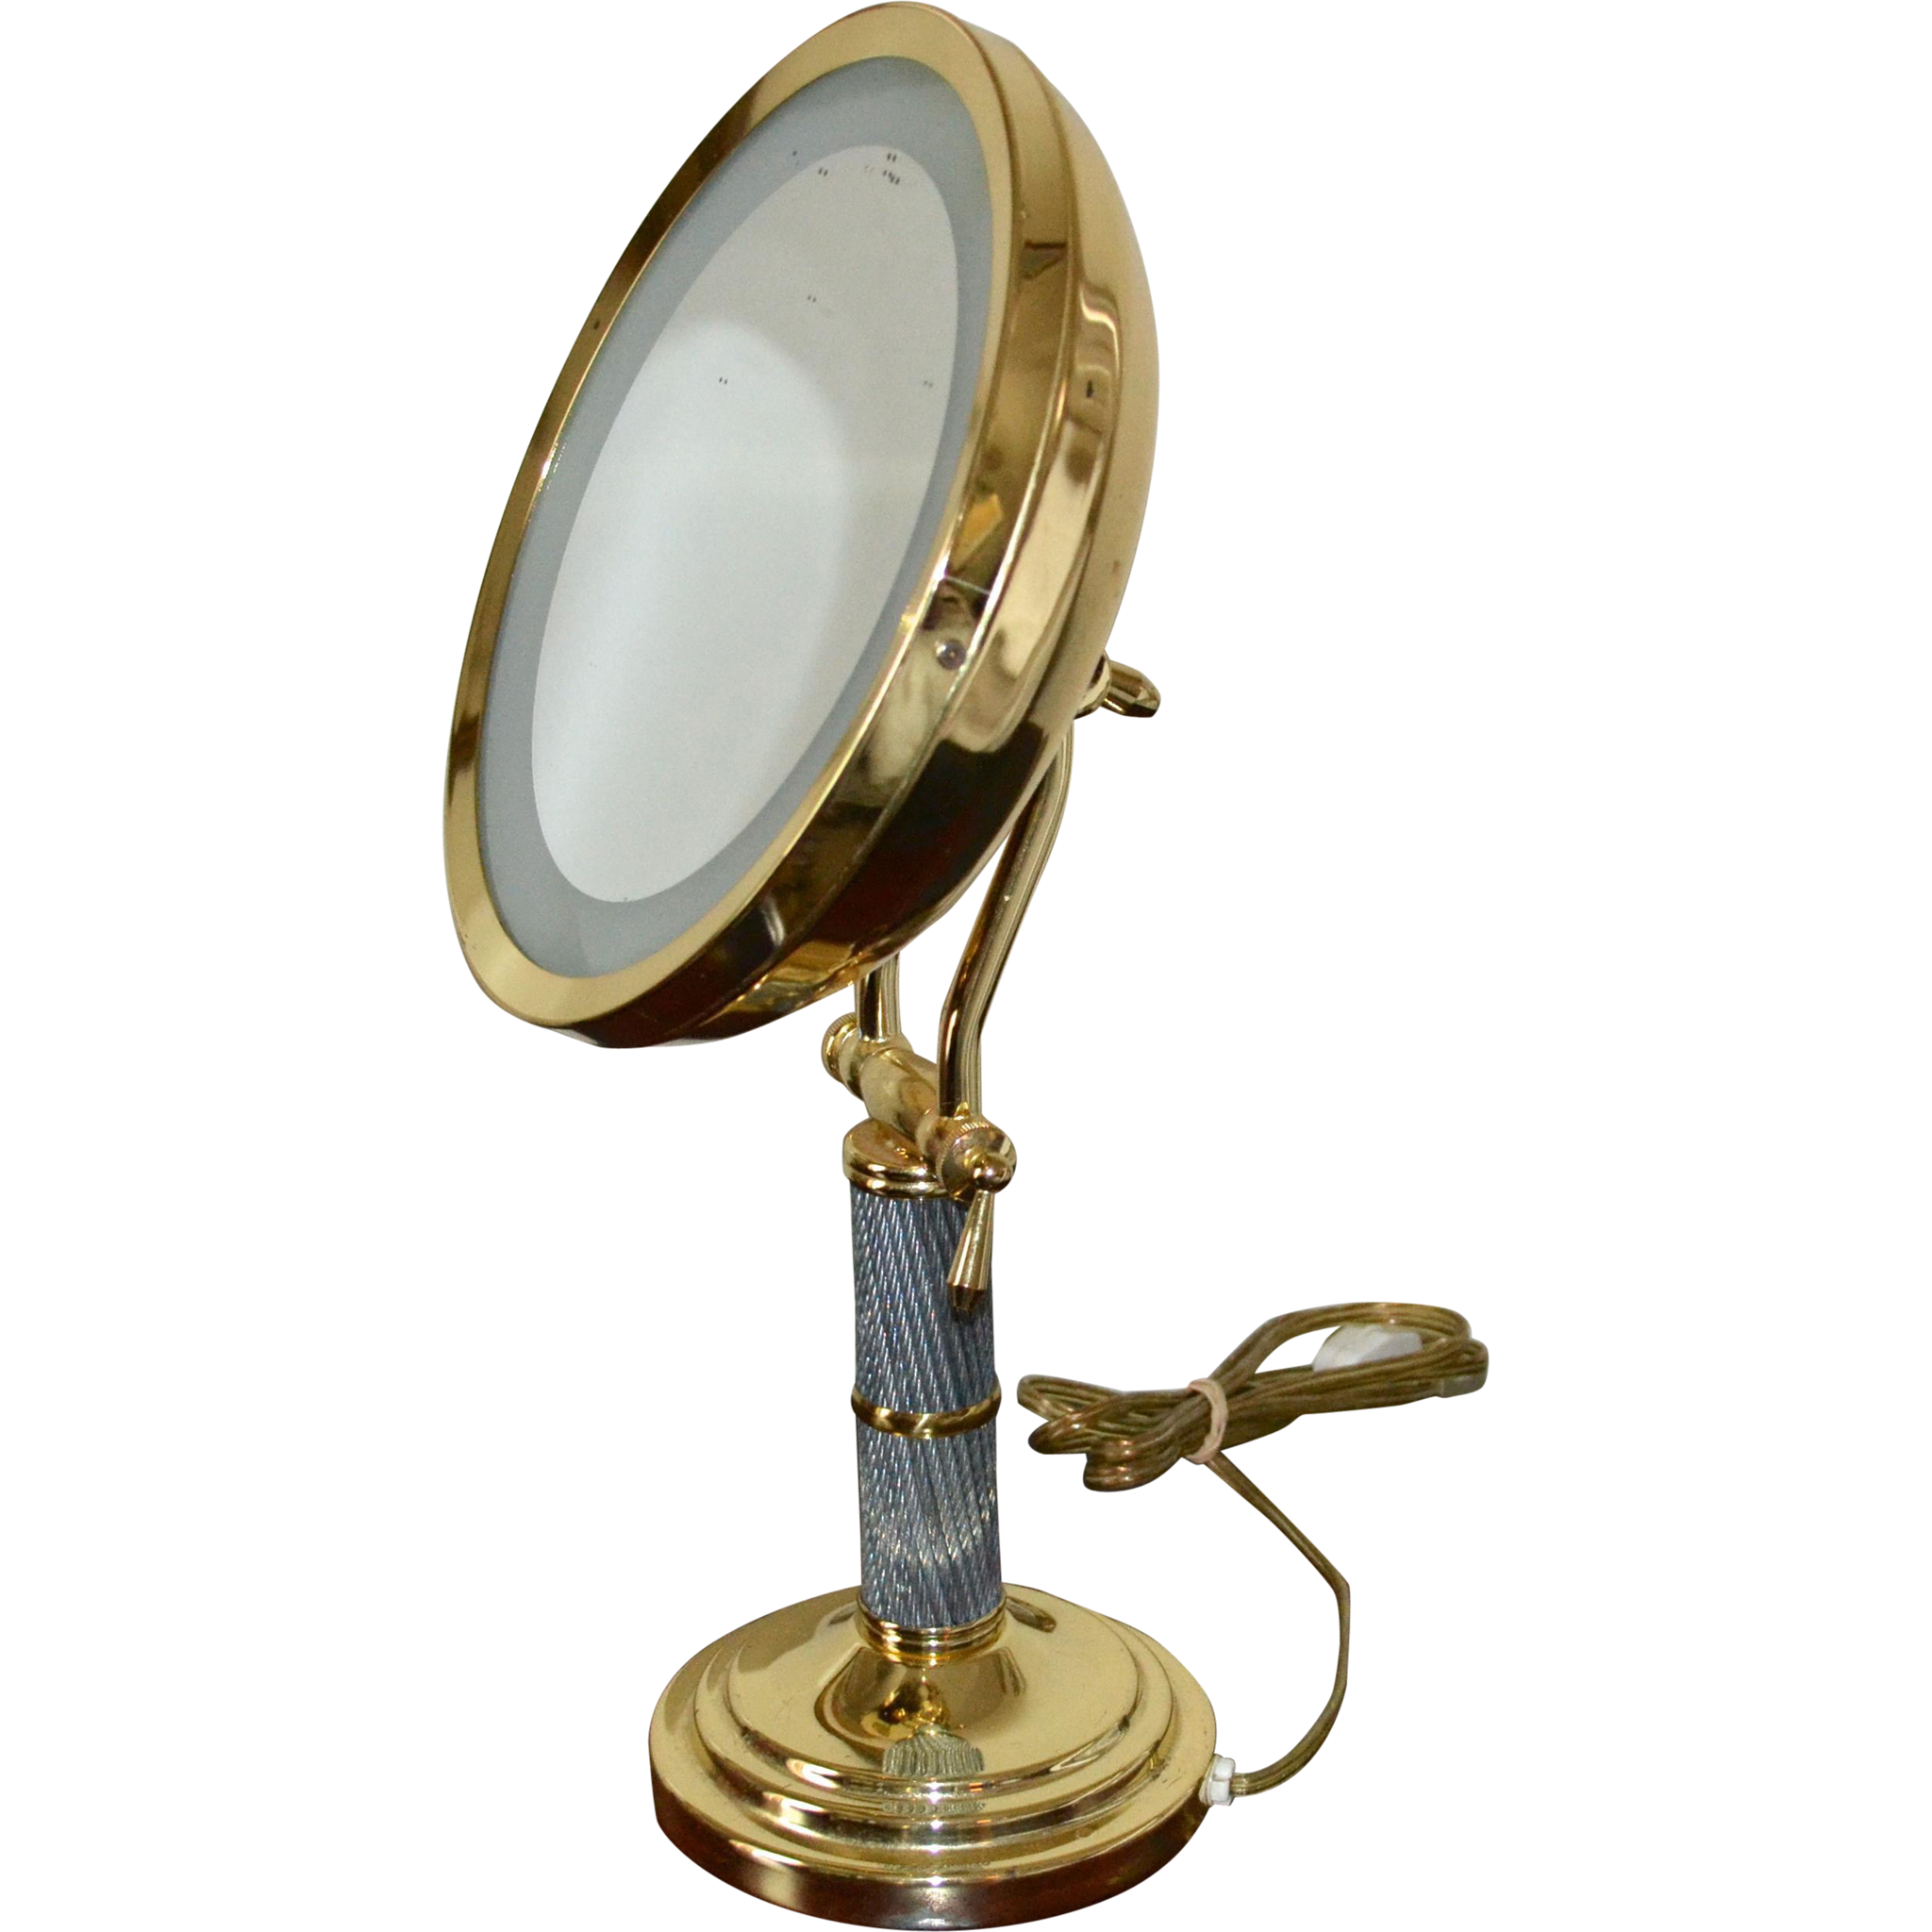 Fancy Deco Inspired Large Swivel Lighted Magnified Vanity Mirror From Kitscha